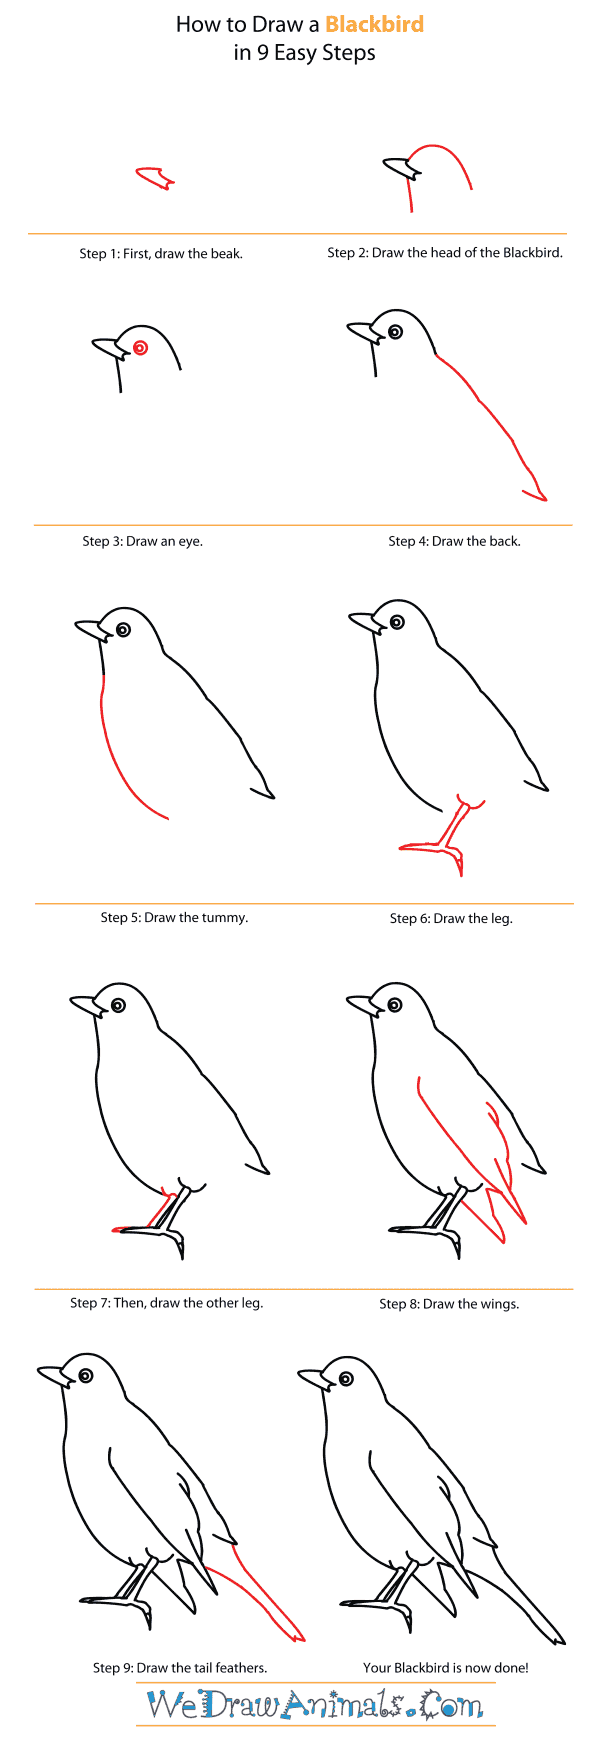 How to Draw a Blackbird - Step-By-Step Tutorial